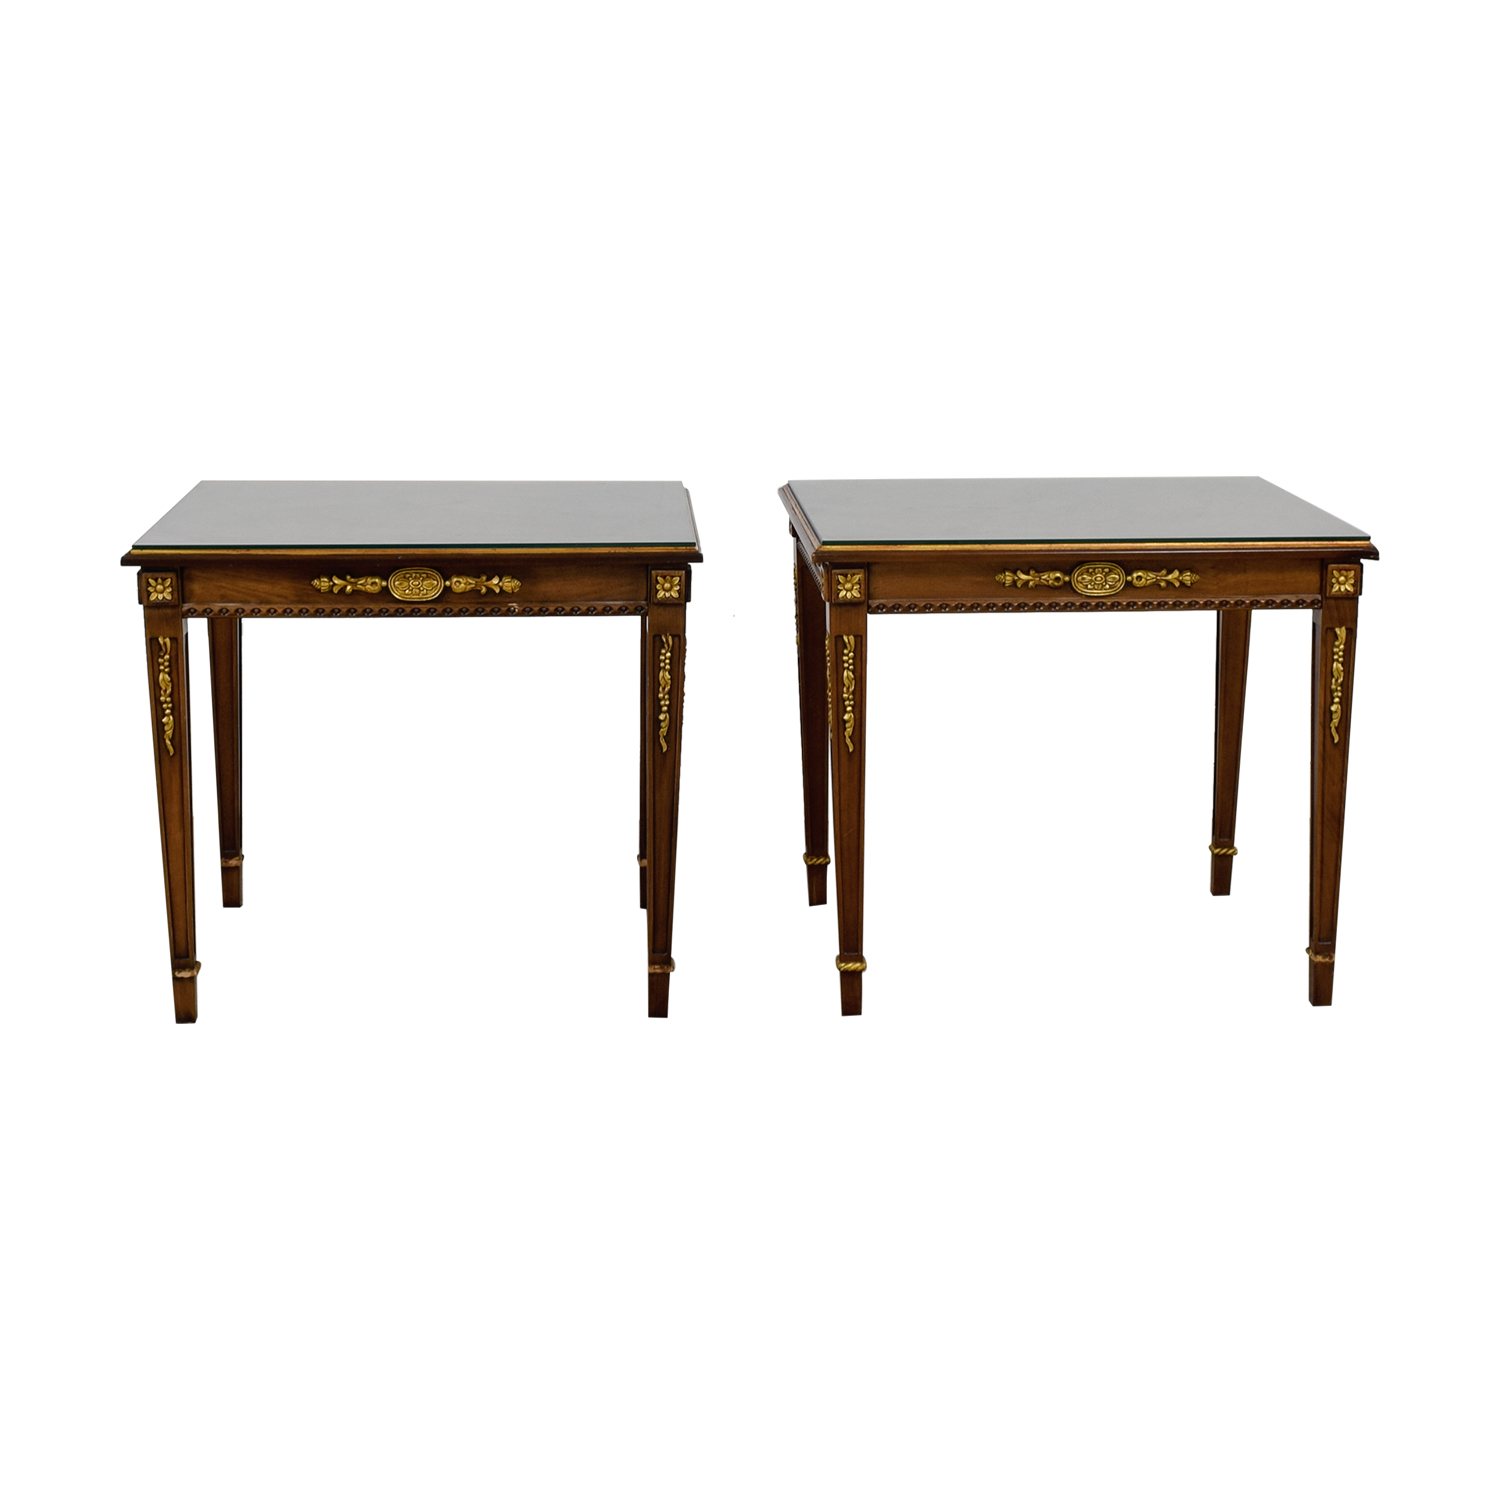 Wood & Gold Trimmed End Tables with Glass Protective Top / Tables